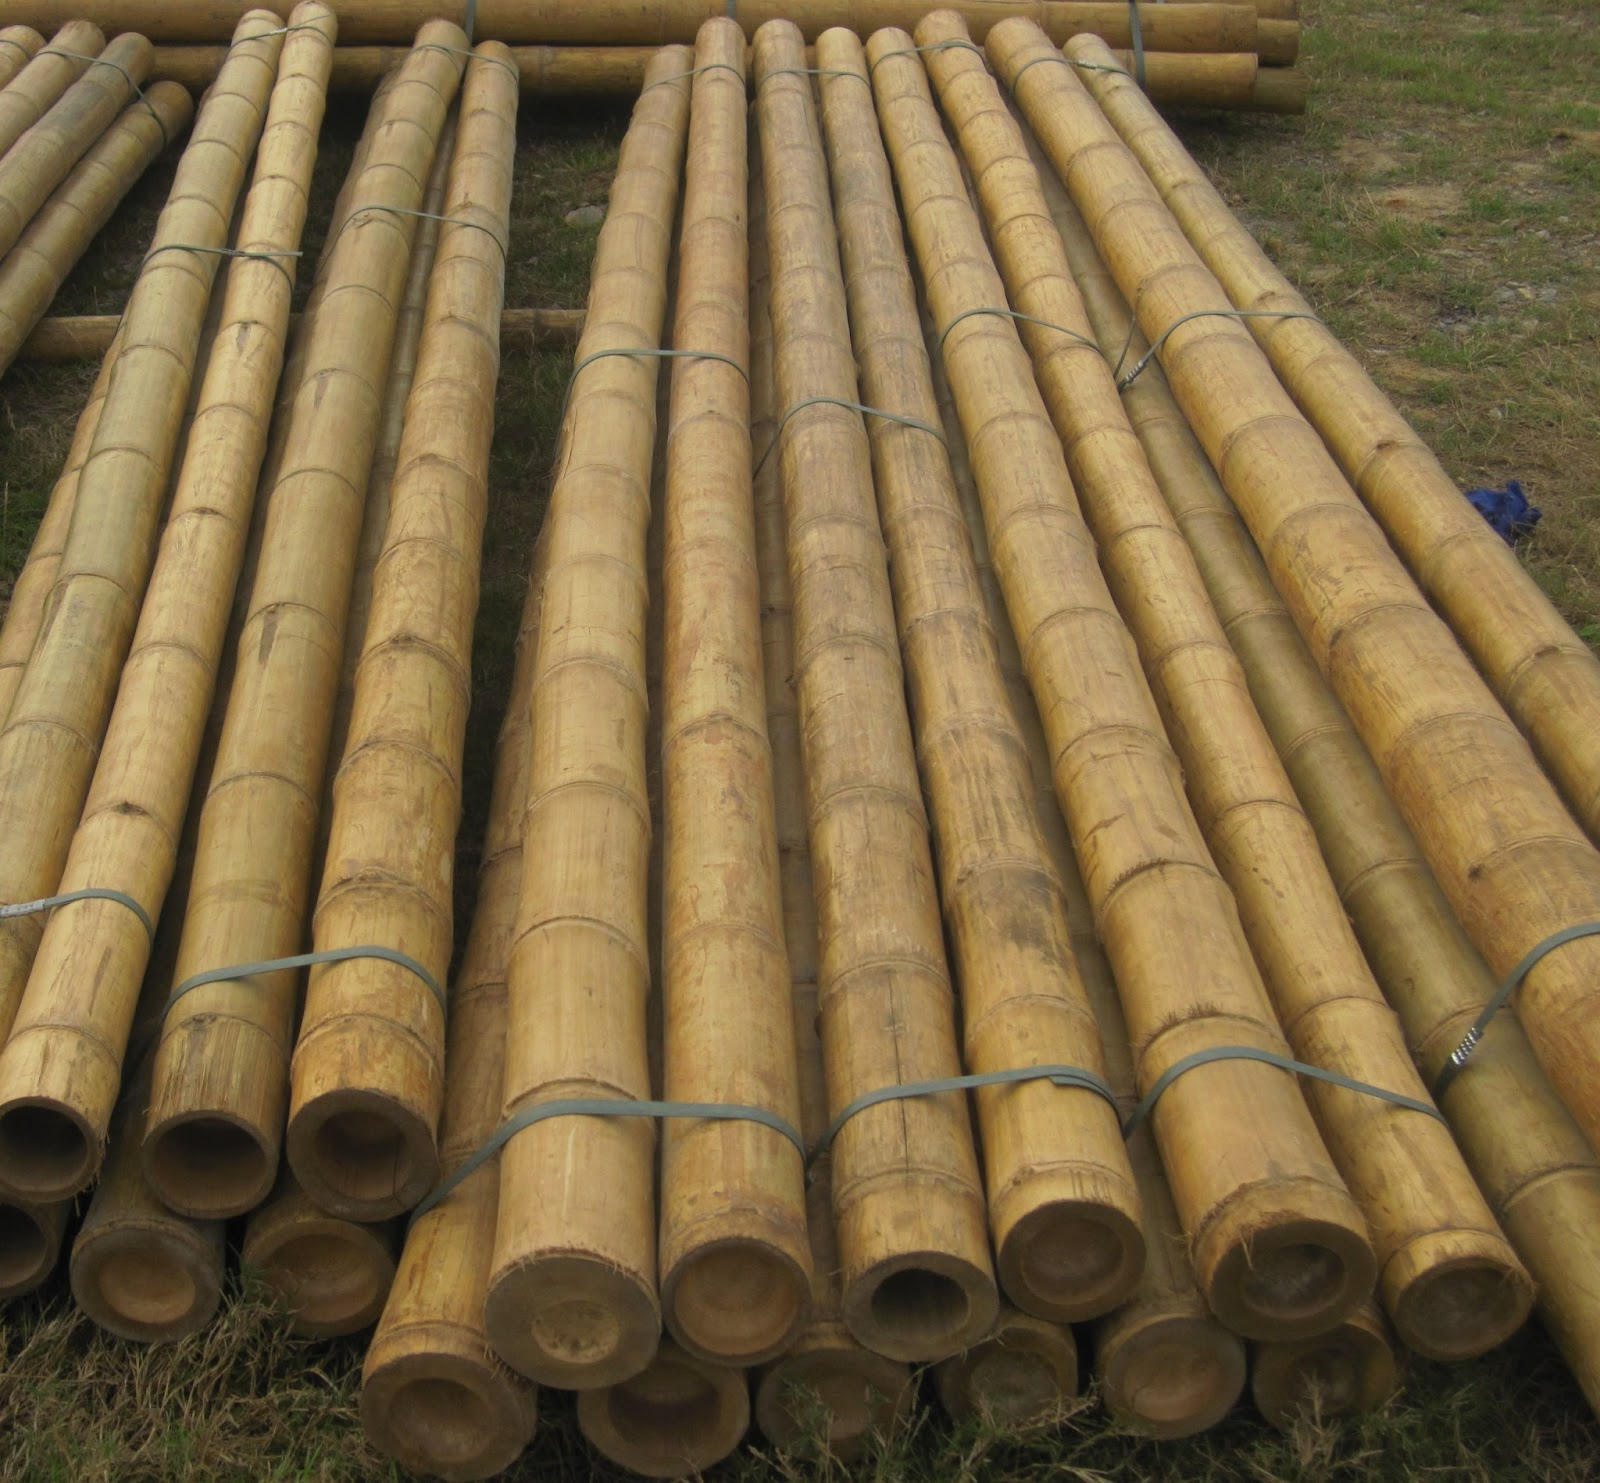 Quality bamboo and asian thatch buy poles on sale